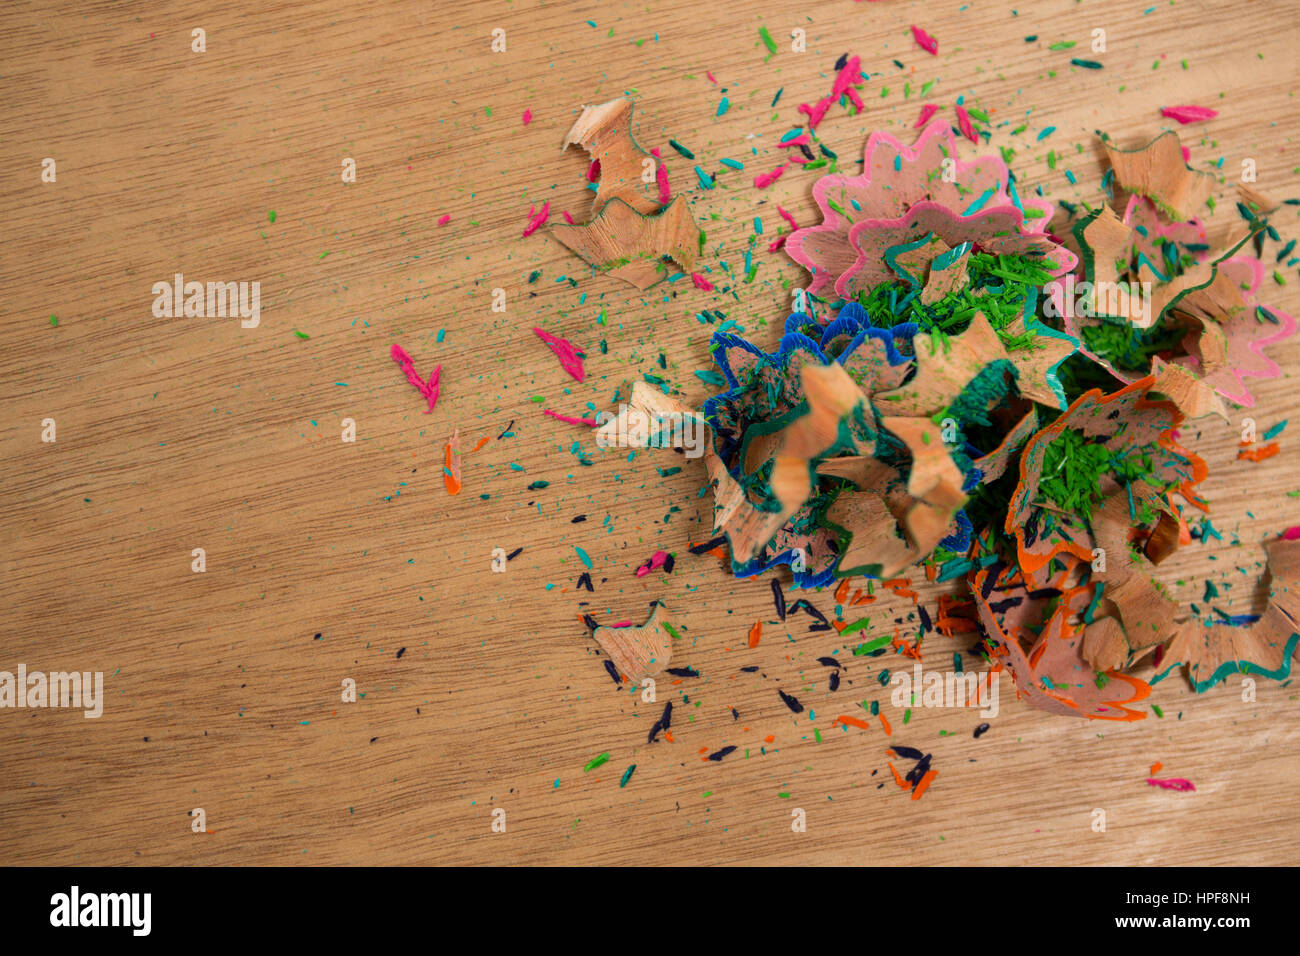 Close-up of colored pencil shavings on wooden background - Stock Image